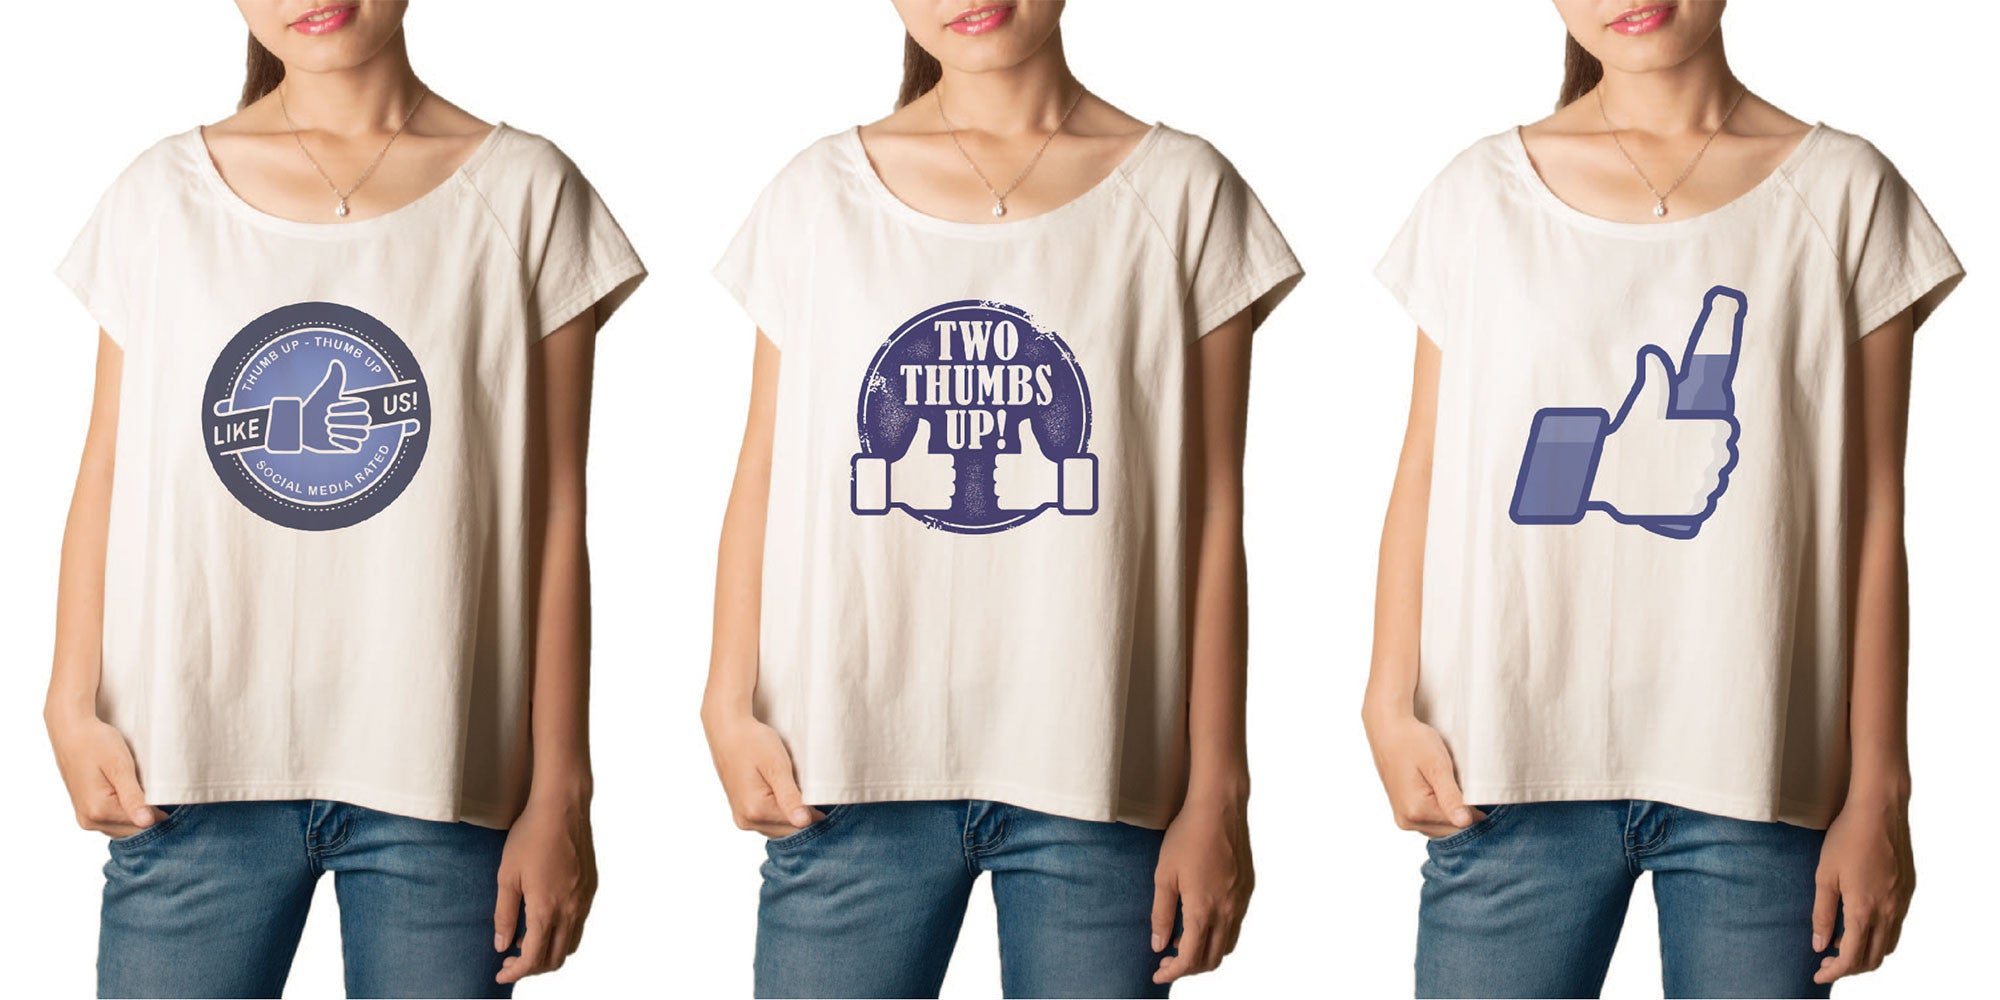 Women's Thumbs up Printed cotton T-shirt  Tee WTS_01